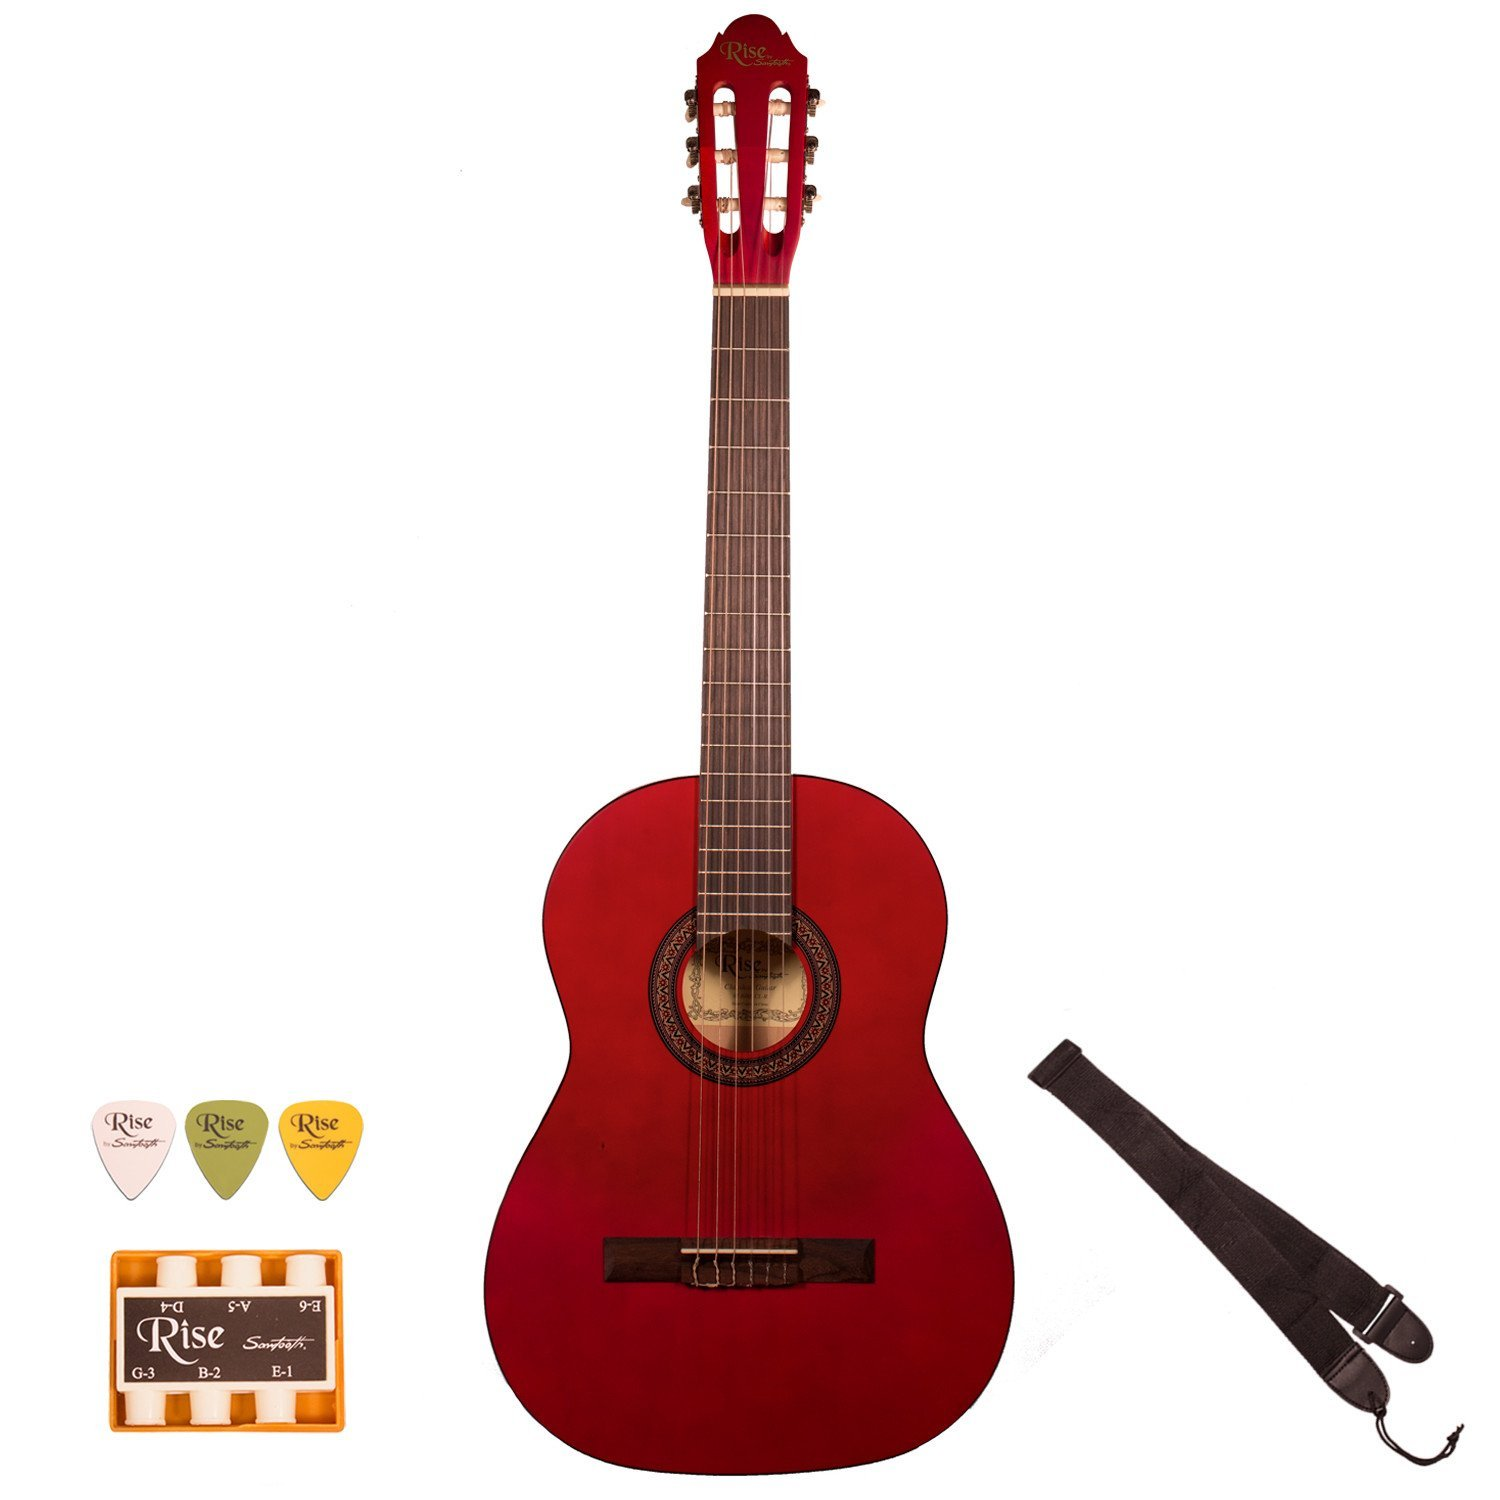 Rise by Sawtooth Full Size Beginner's Acoustic Guitar with Accessories, Satin Red Stain by Sawtooth